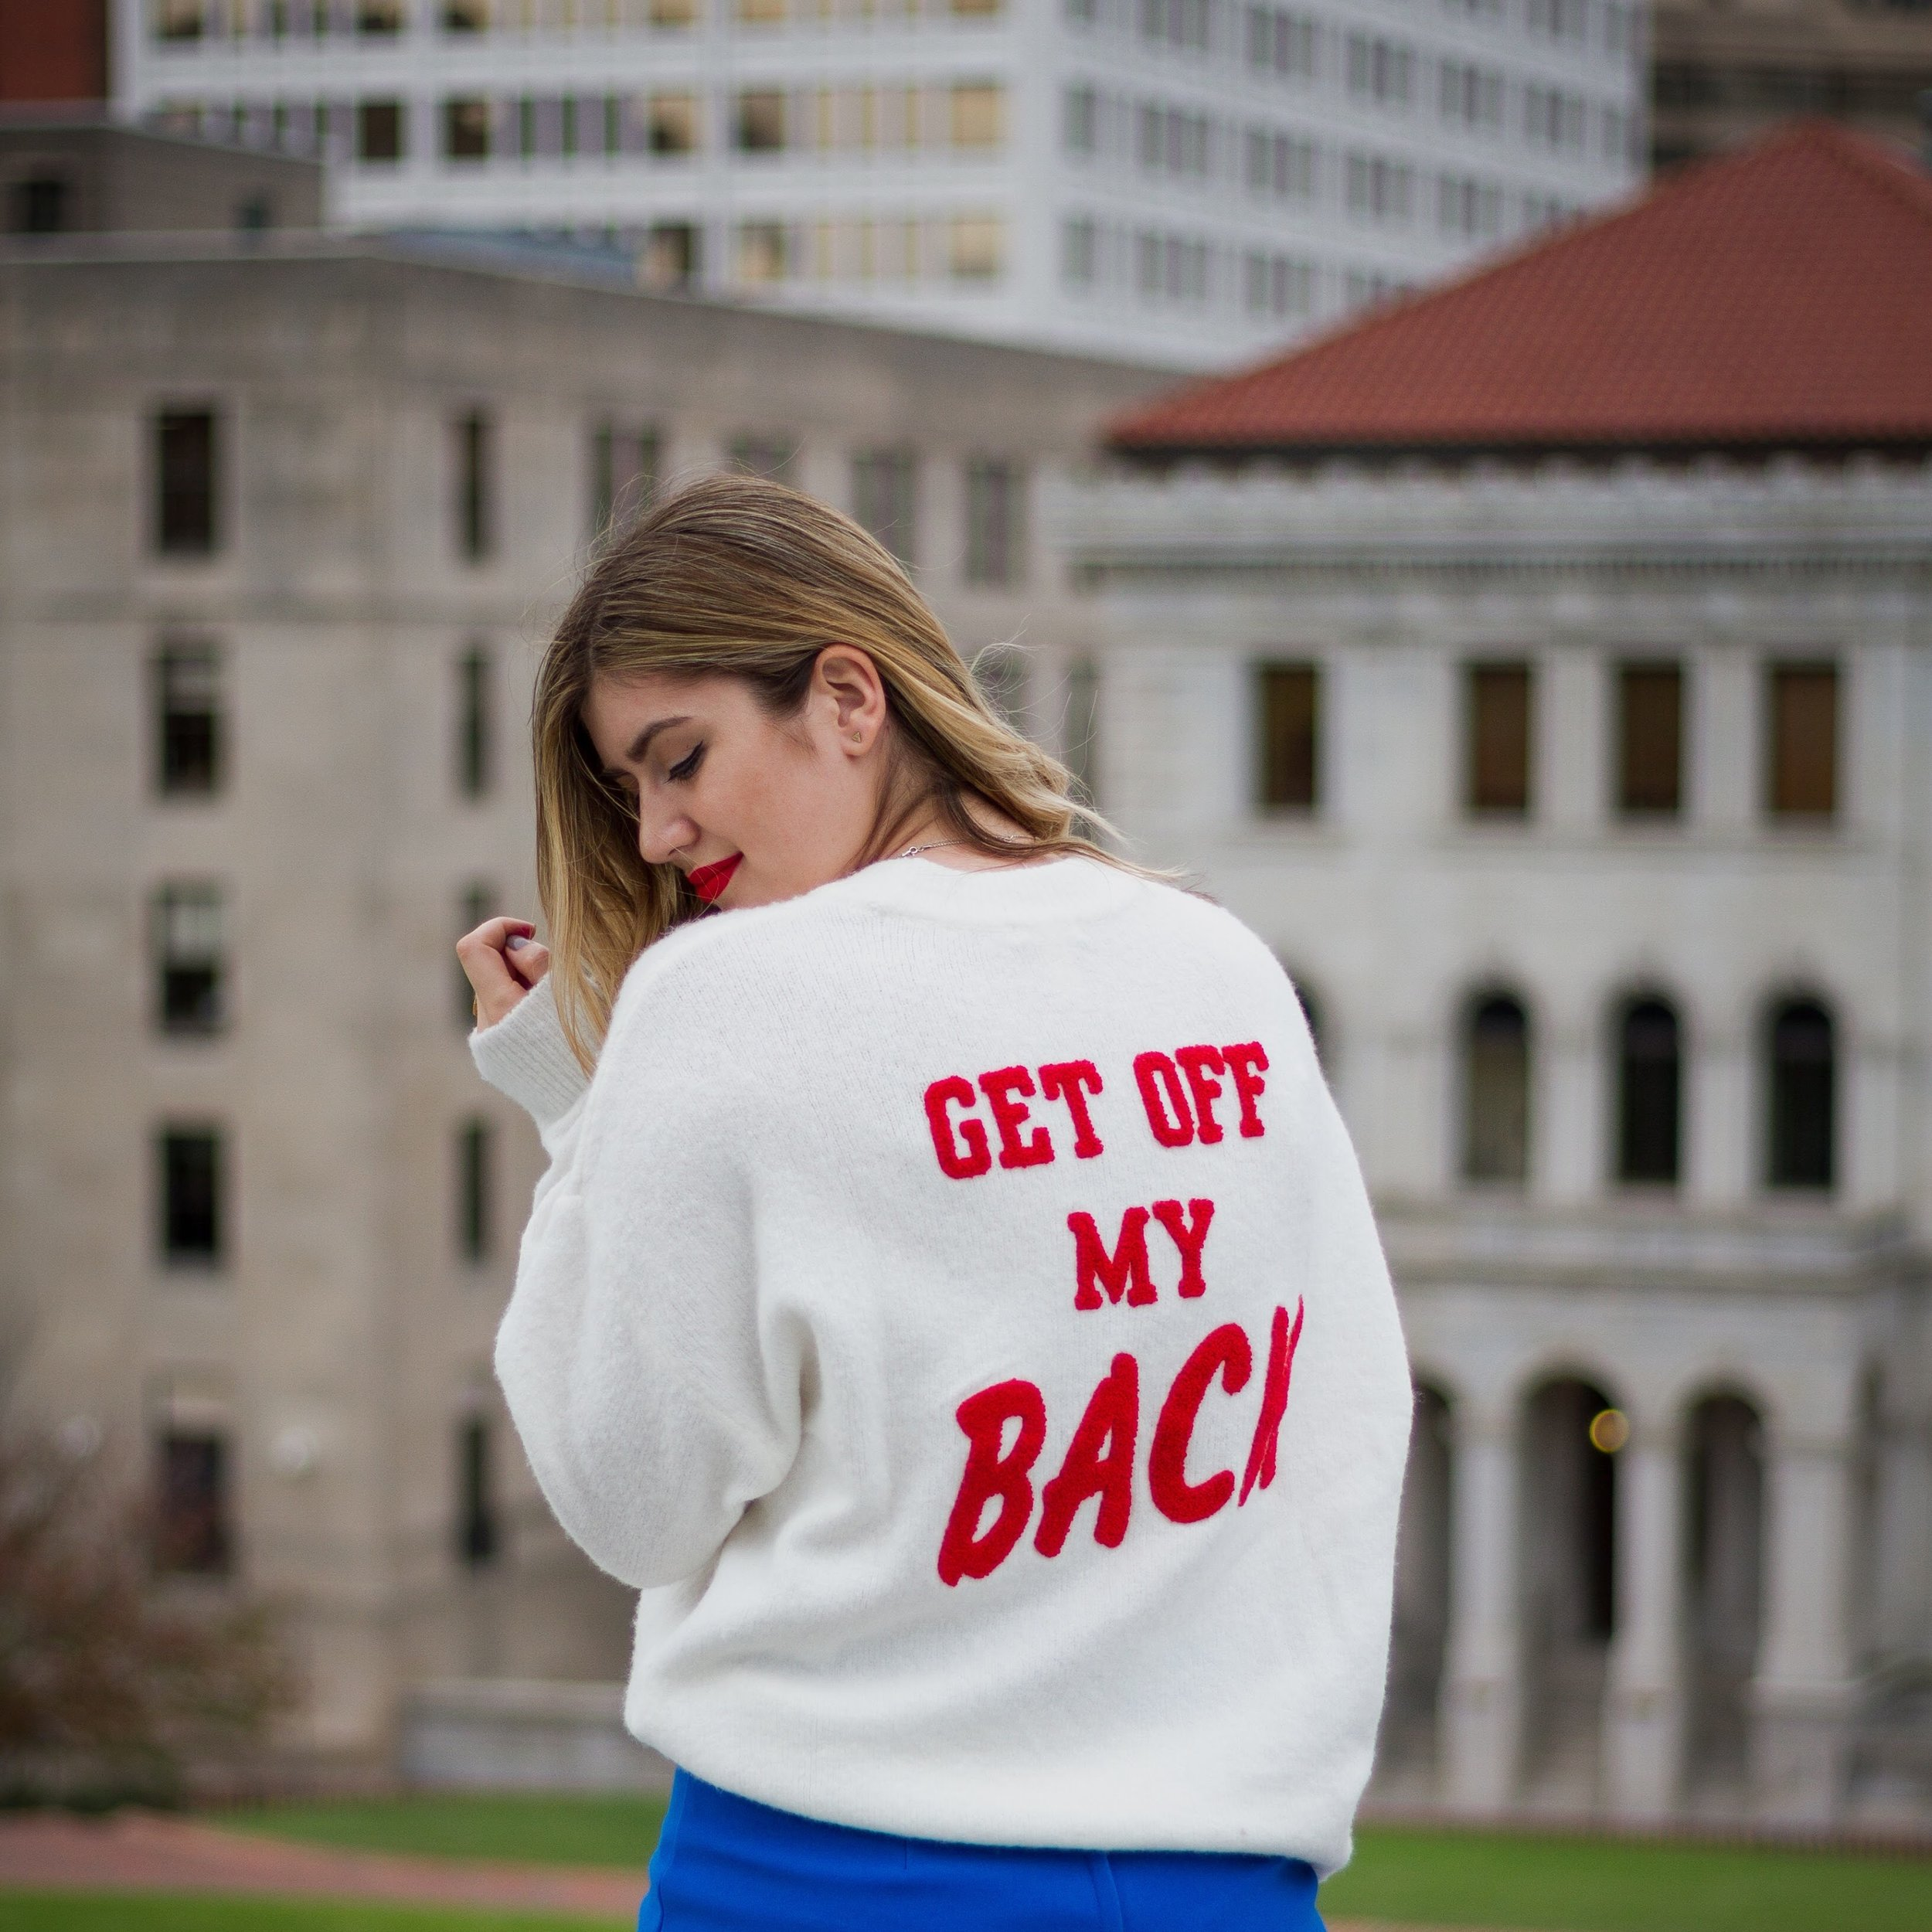 hm-sweater-get-off-my-back-graphic